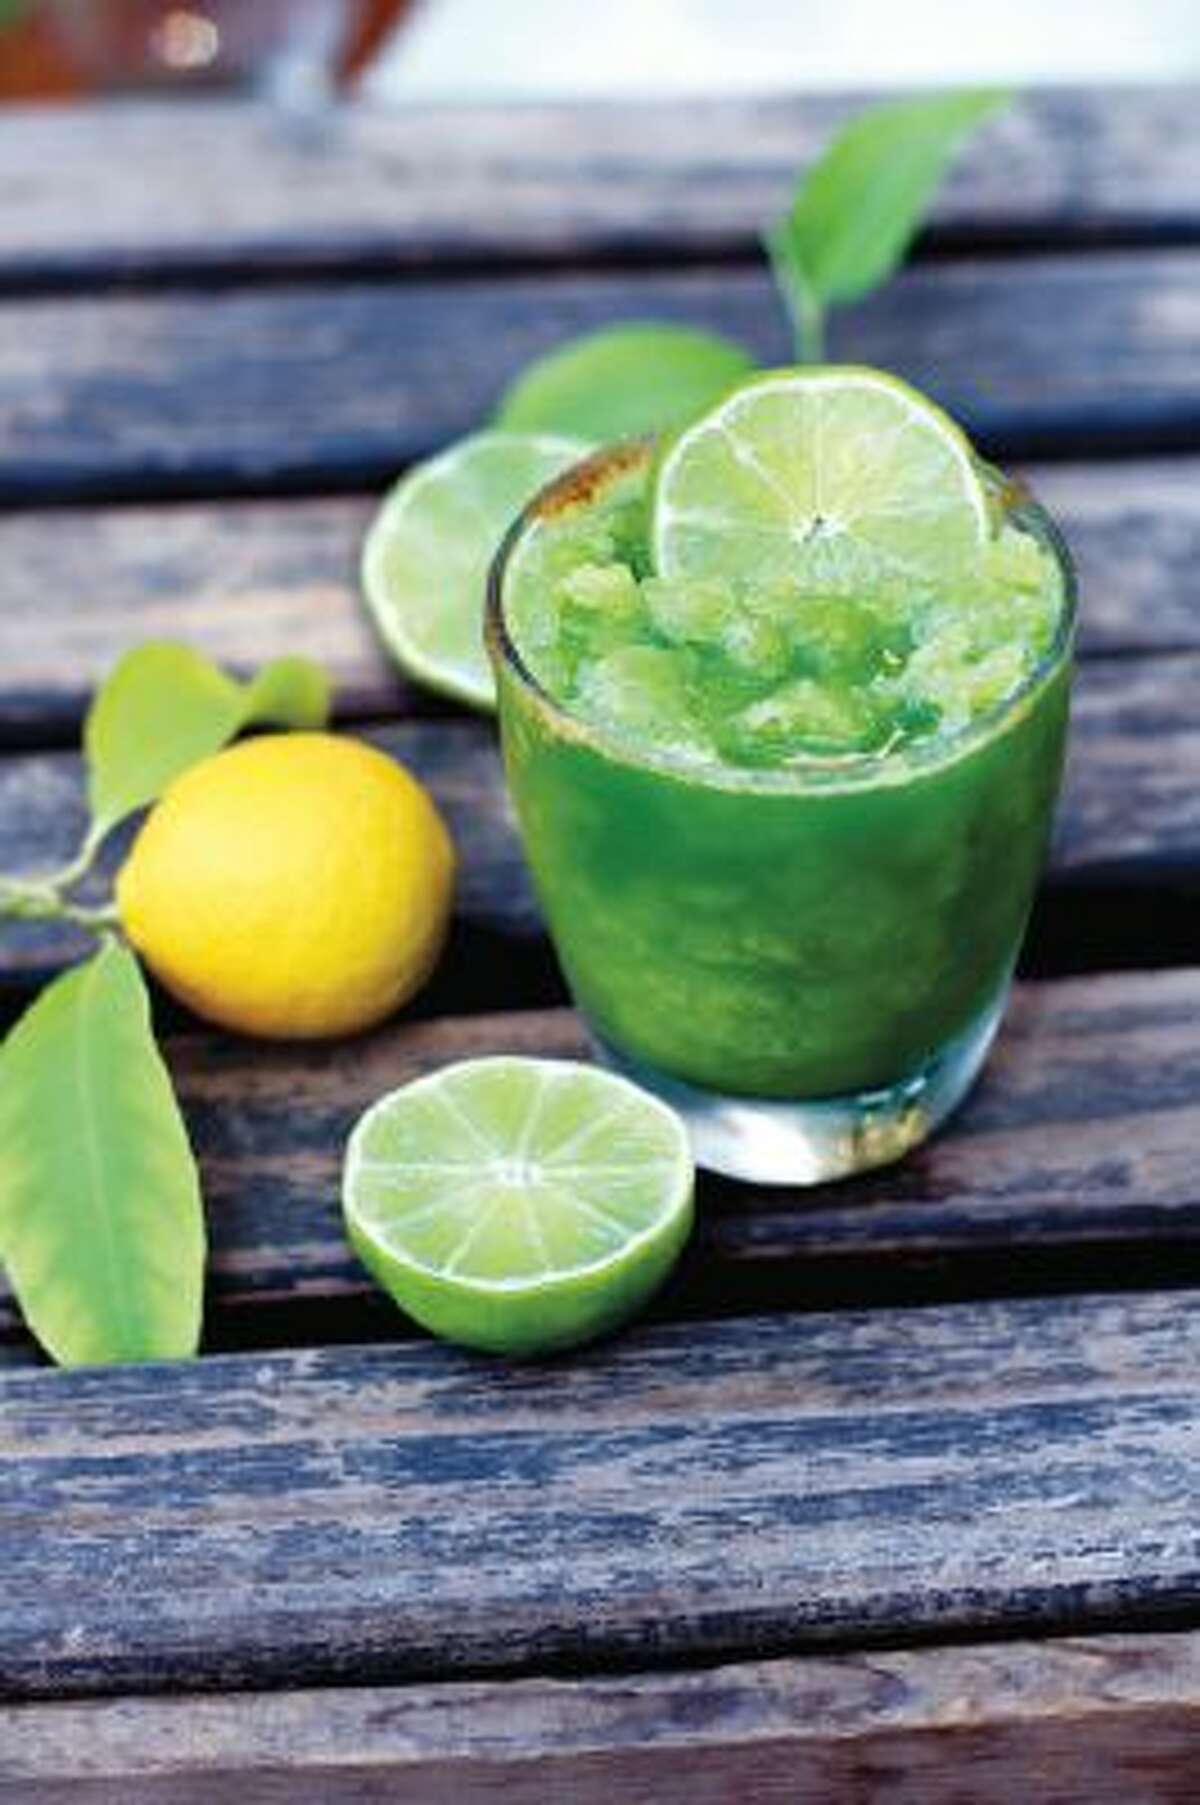 A lemon-lime smoothie boosts your immune system and wakes up those tastebuds.